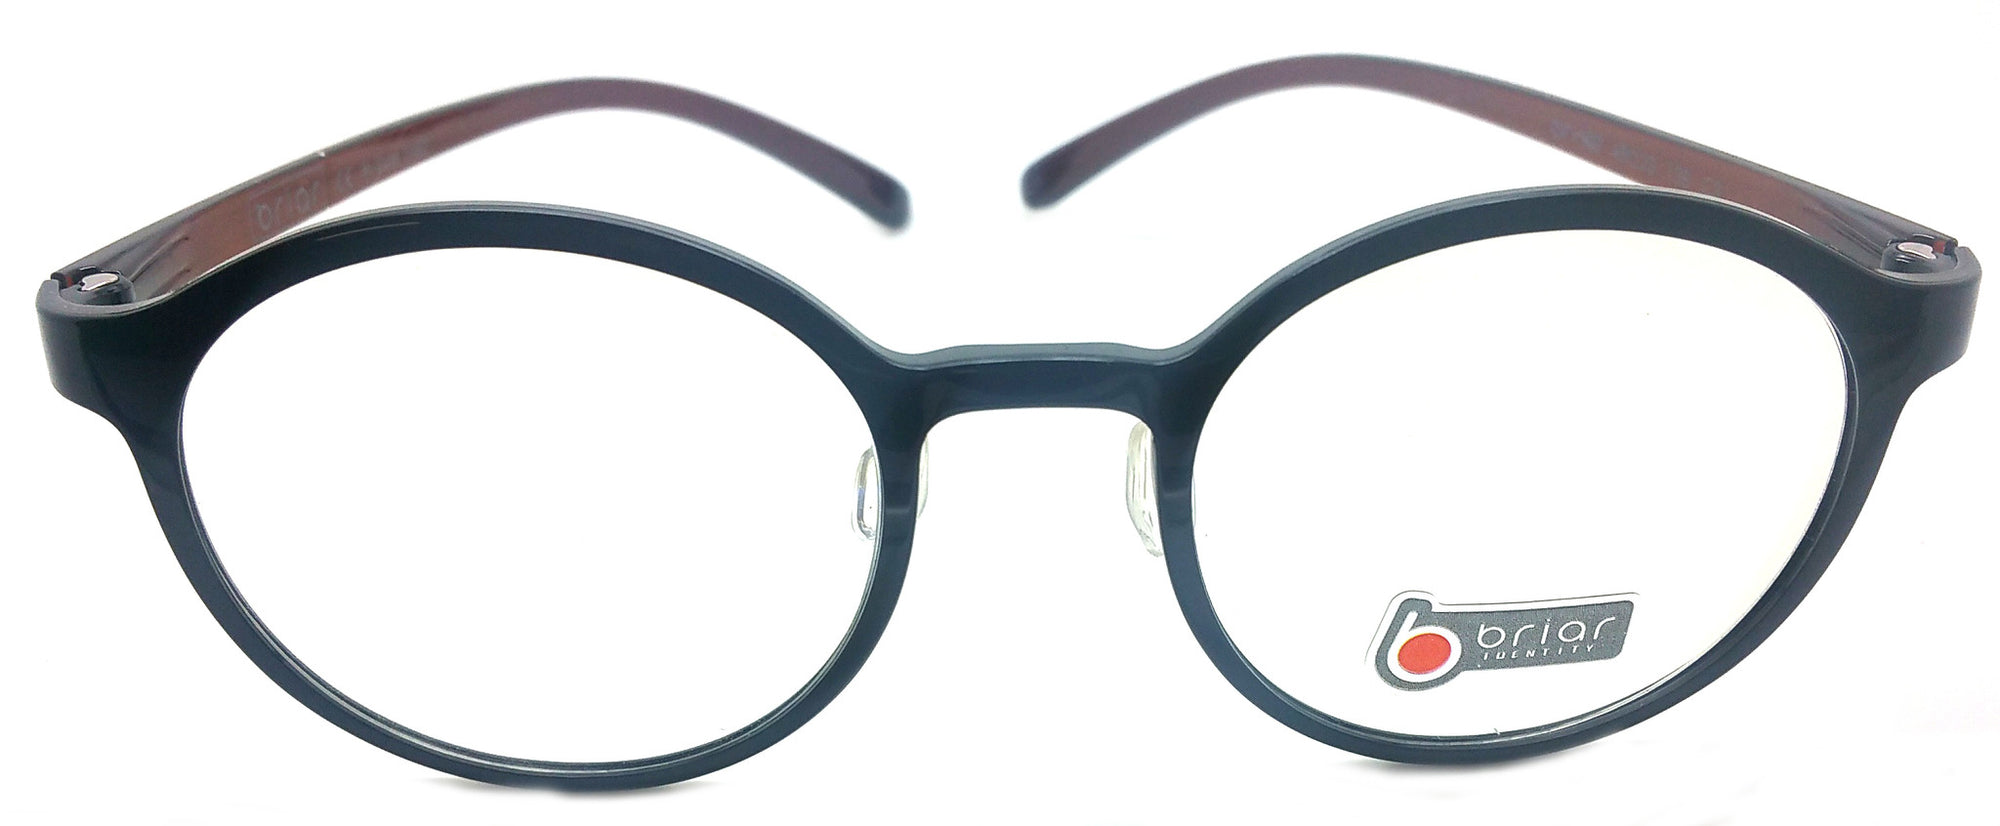 Briar Eyeglasses Prescription Frame Super Light, Flexible,  BR 303 C3